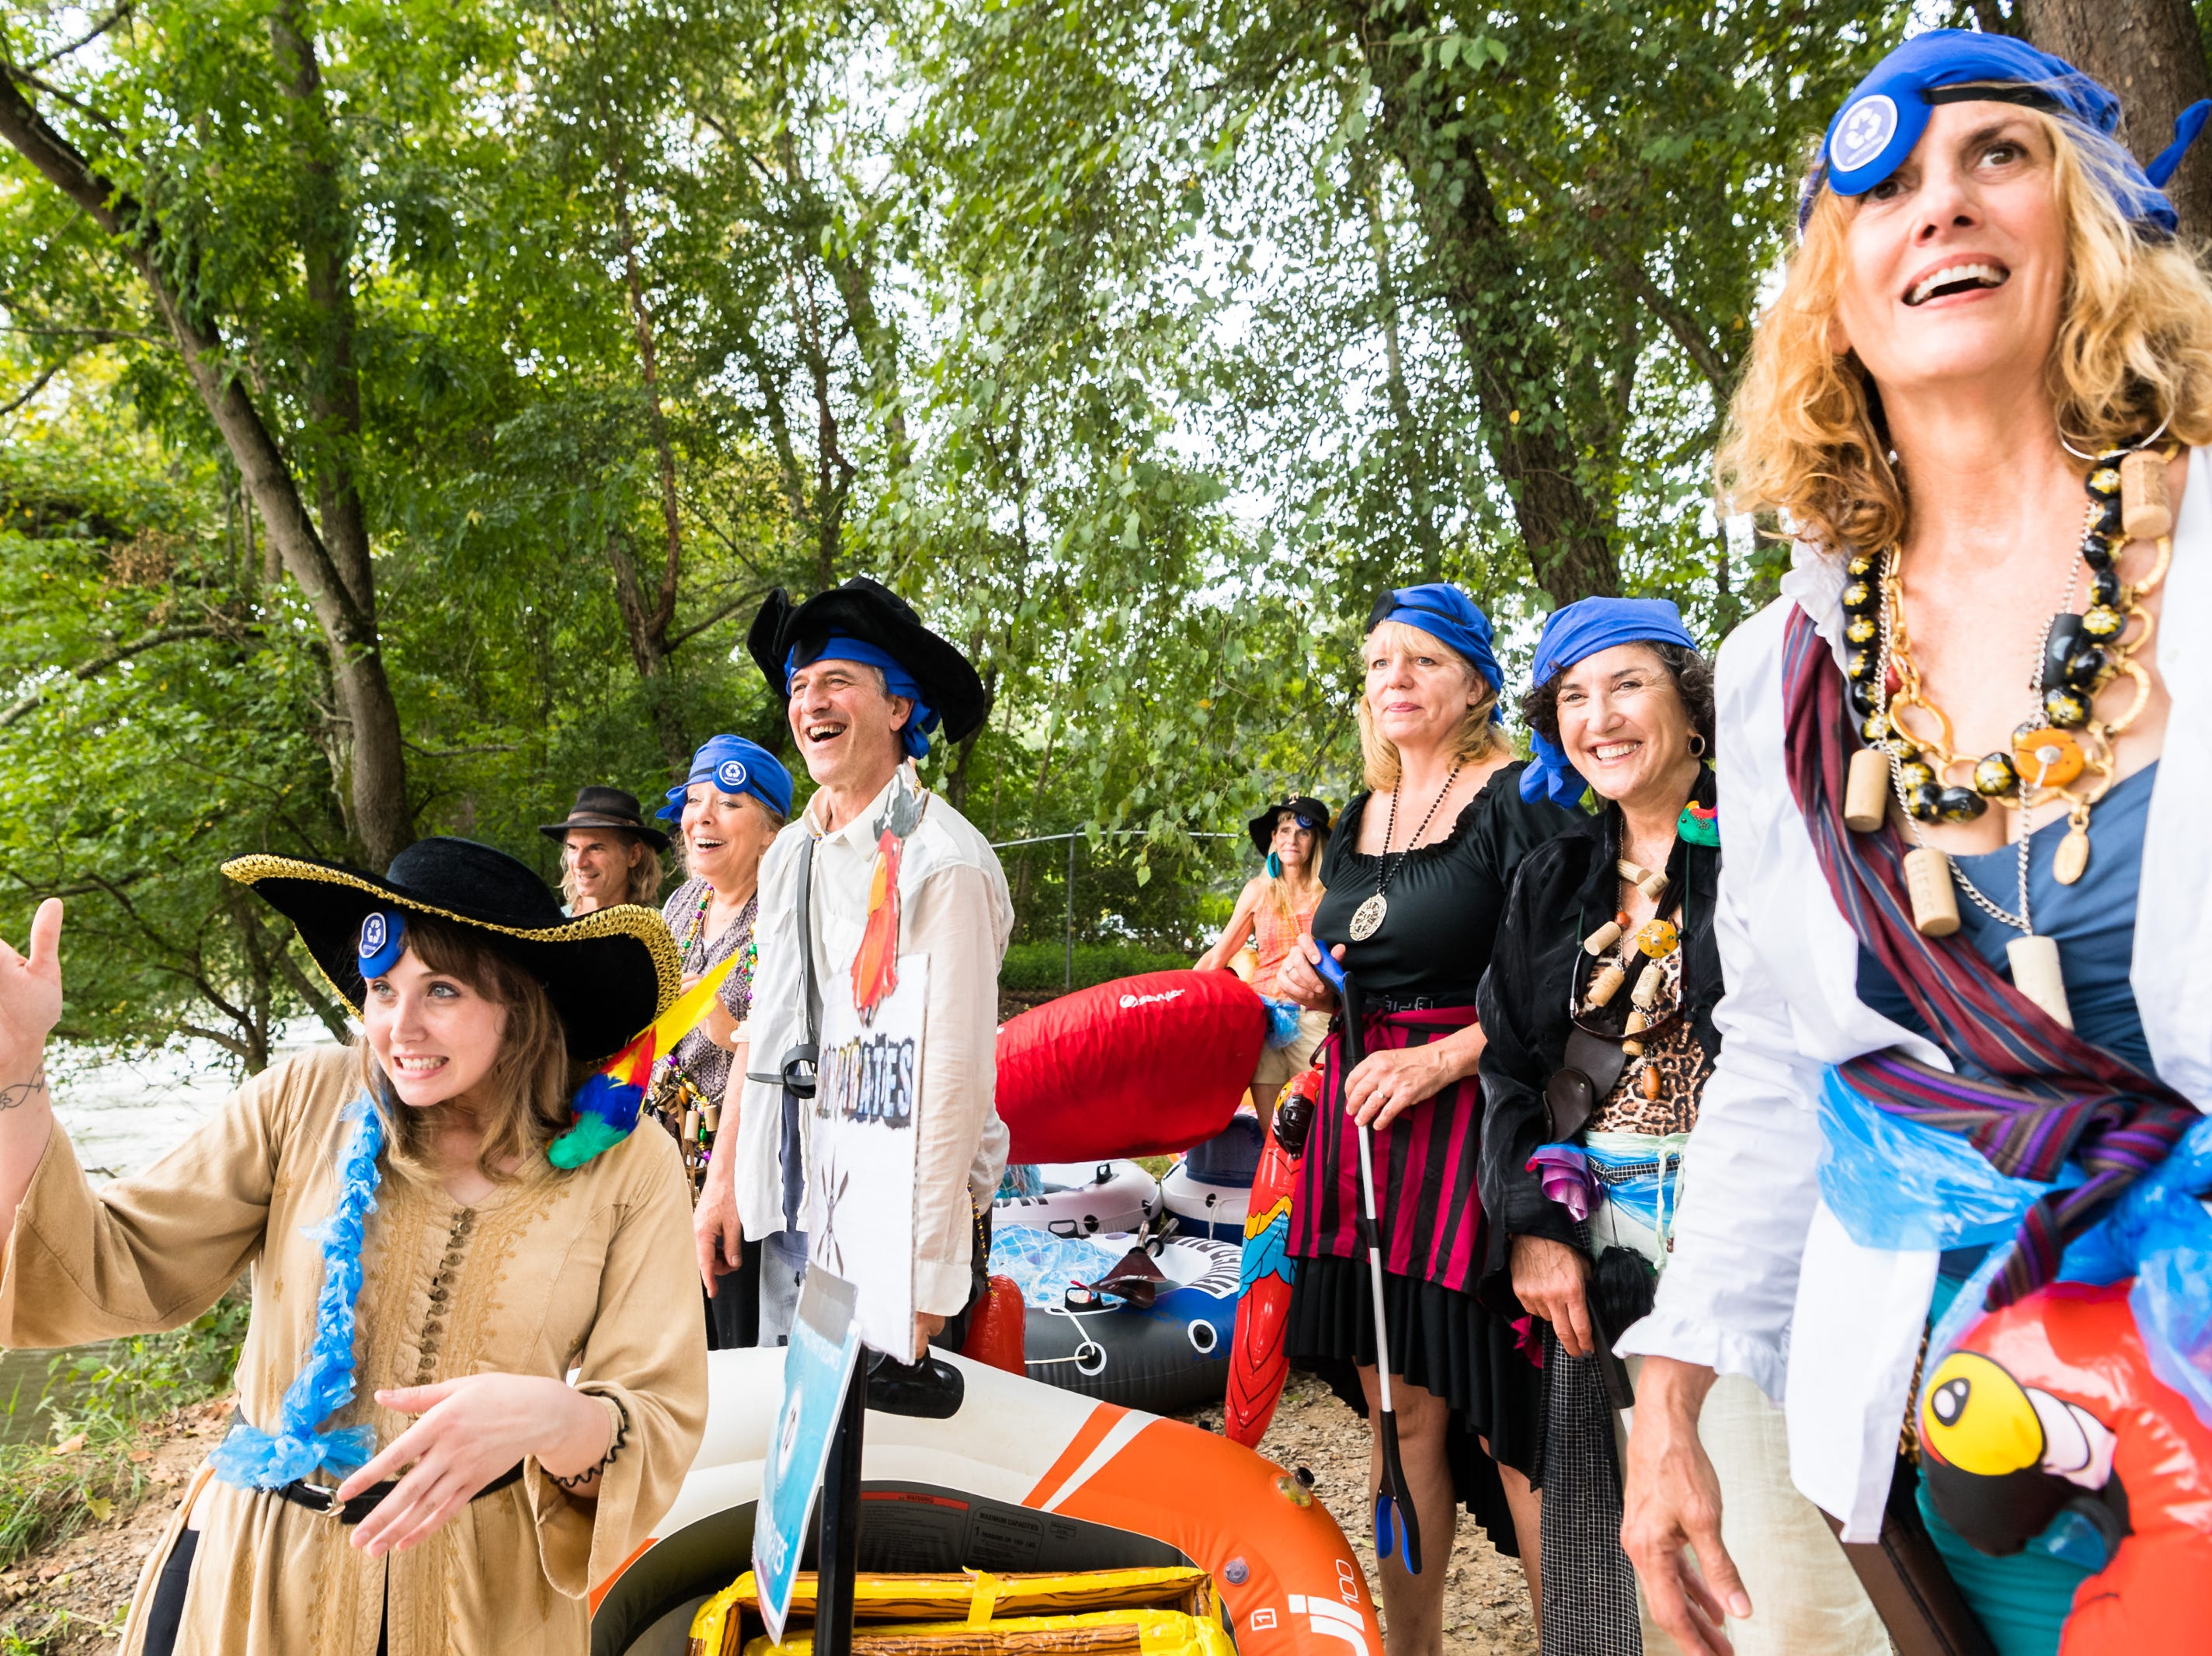 The Trash Pirates Anything that Floats parade team watches another team launch before floating down to New Belgium Brewing where RiverLink's RiverFest took place Saturday, August 18, 2018.